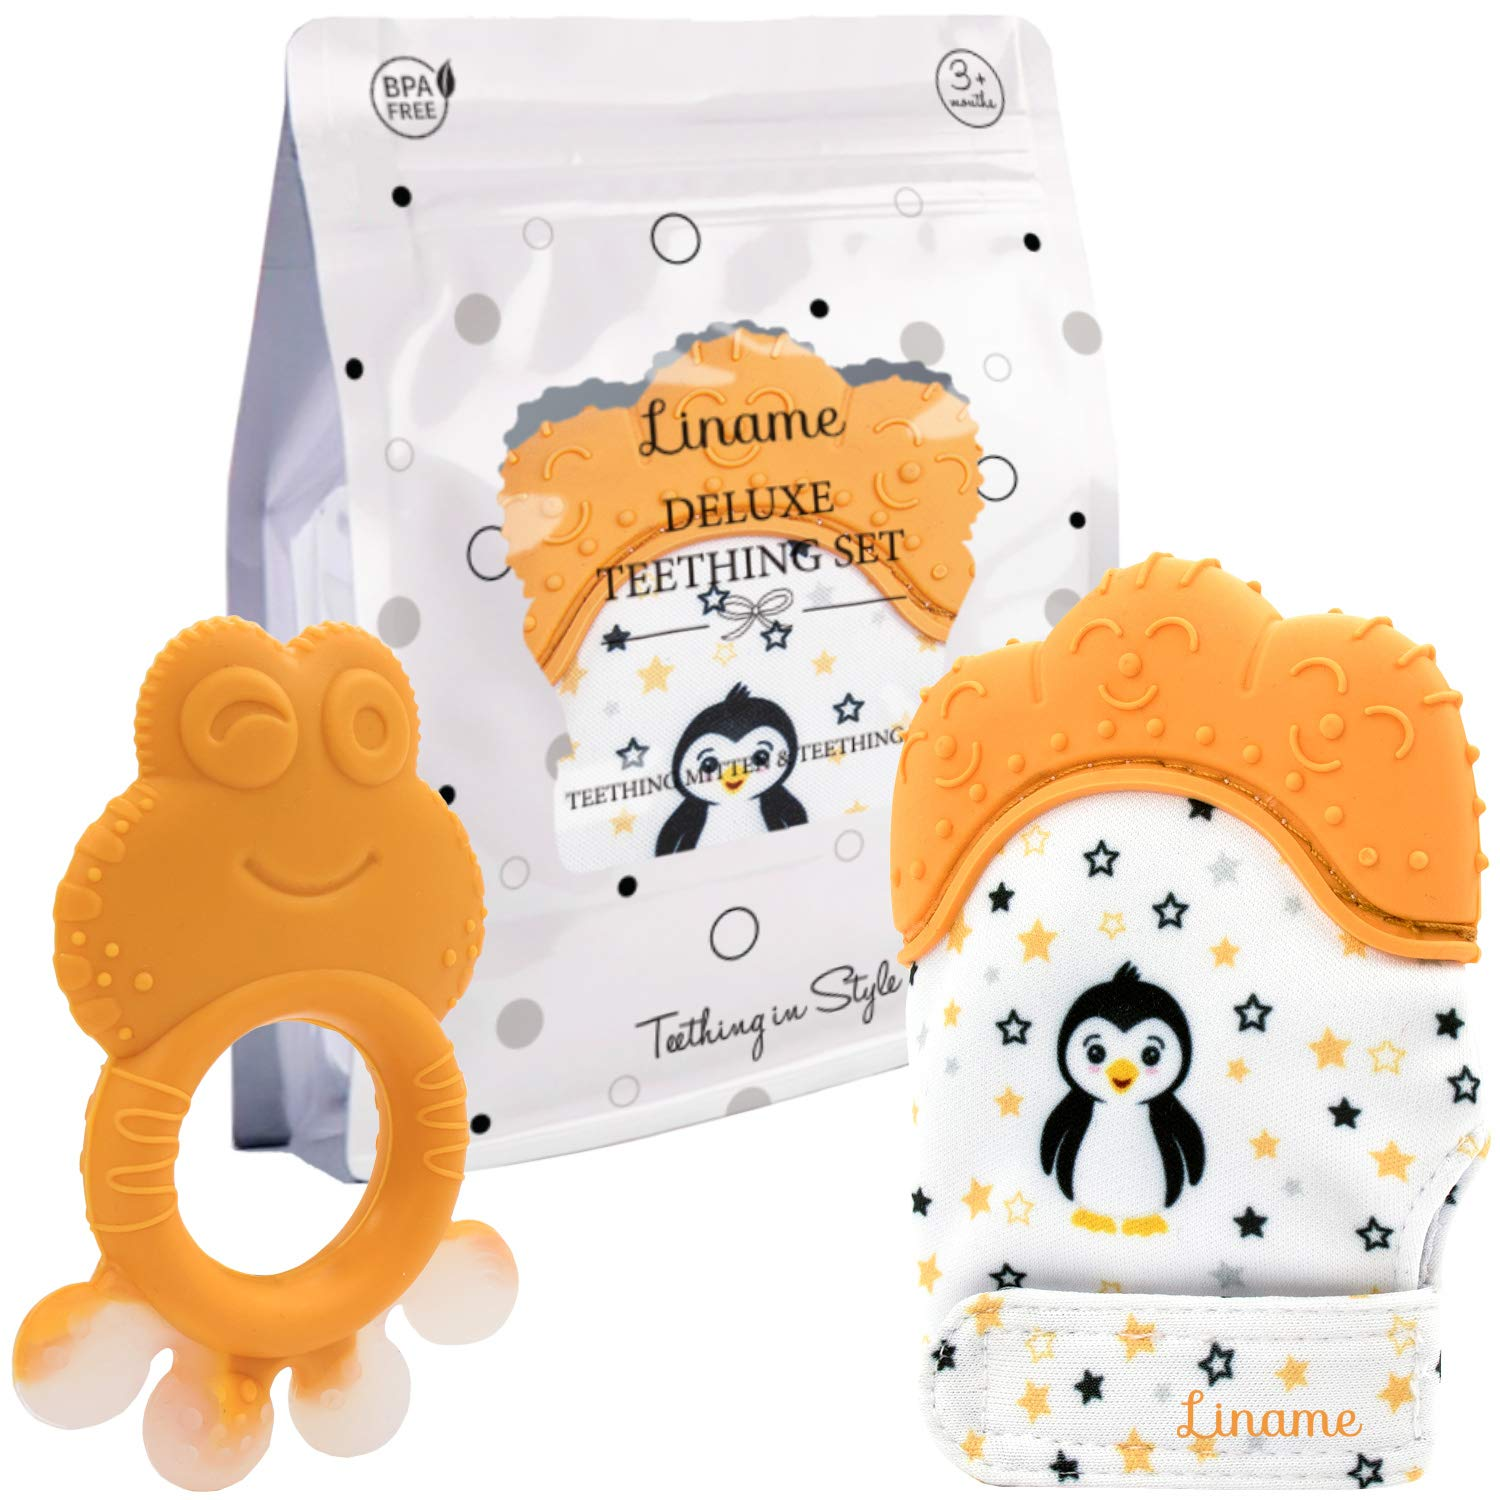 Provides Soothing Relief /& Solves Your Babies Teething Problems Safe Liname️ Deluxe Teething Set Includes Teething Mitten for Babies /& Teething Toy BPA Free Washable Teething Mitt